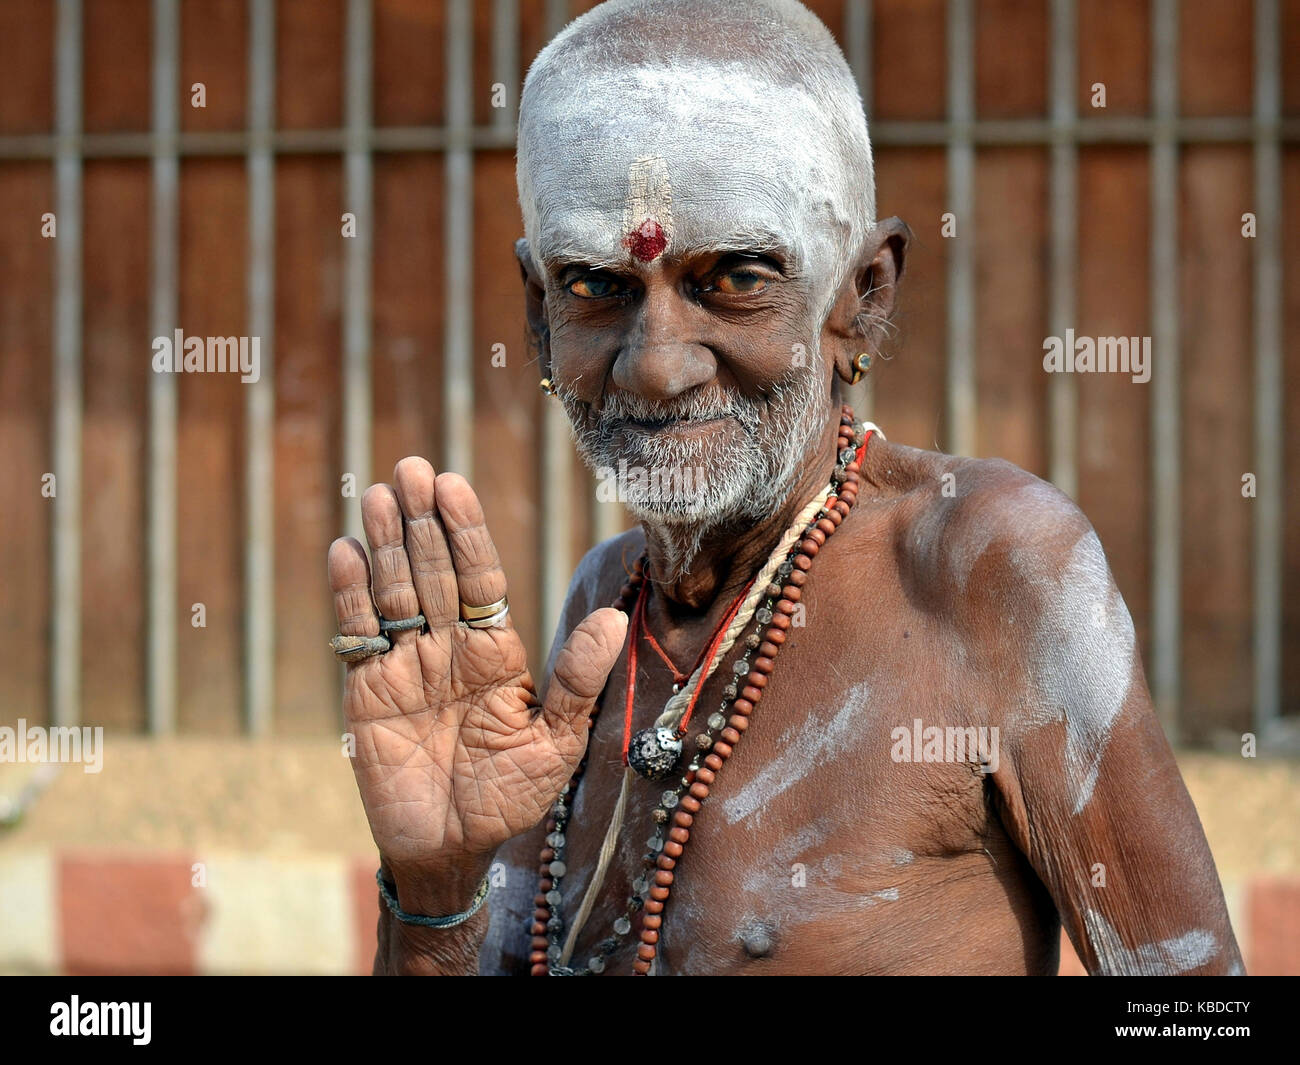 Barechested, very old Shaivite Brahmin with white vibhuti and red tilaka mark on his forehead, raising his right - Stock Image